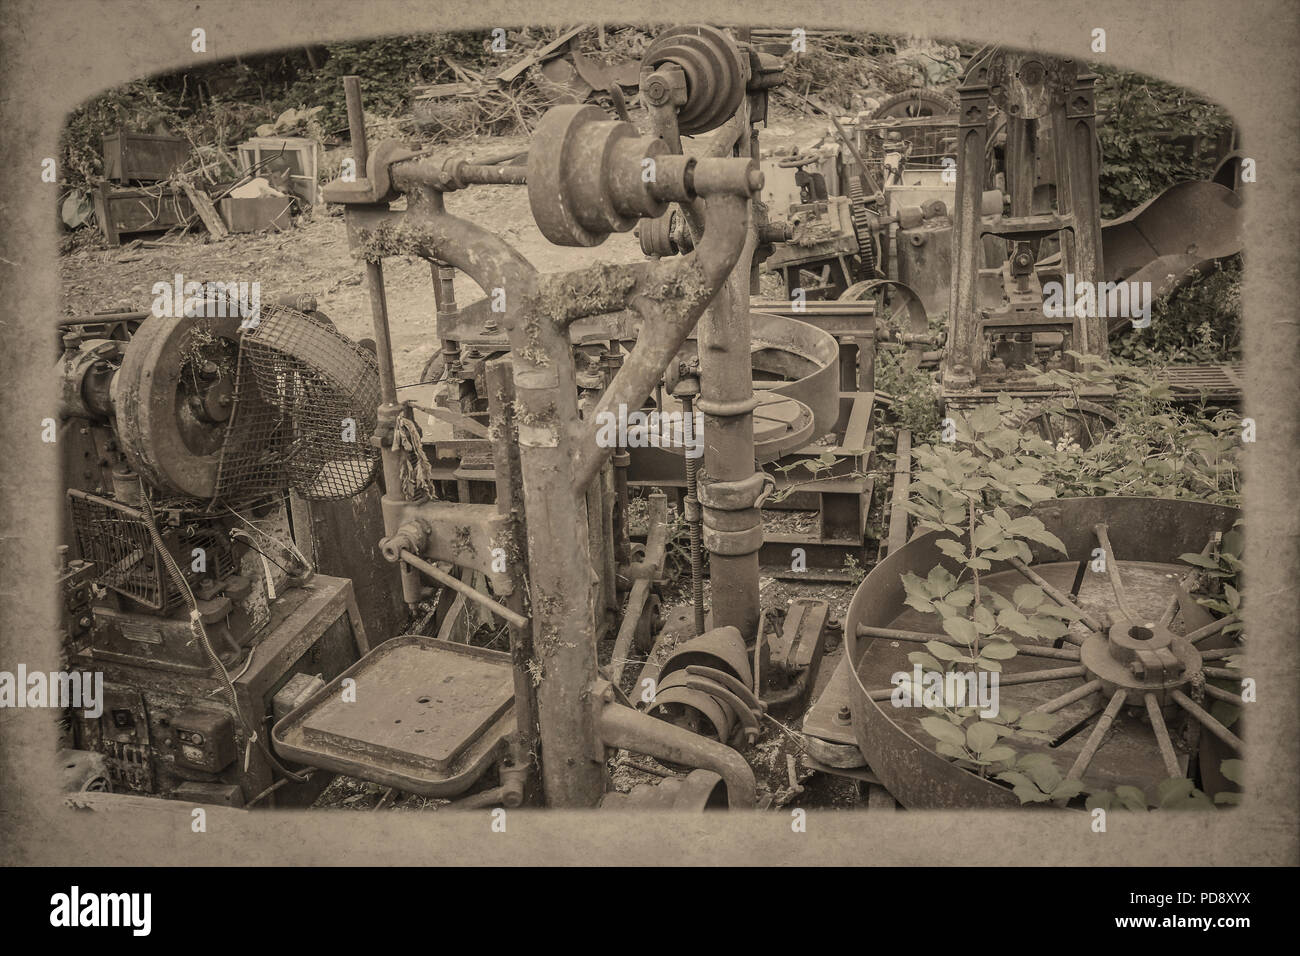 Arty, nostalgic, landscape shot of abandoned, neglected, industrial metalwork parts in outside setting, overgrown with weeds. Vintage sepia effect. - Stock Image